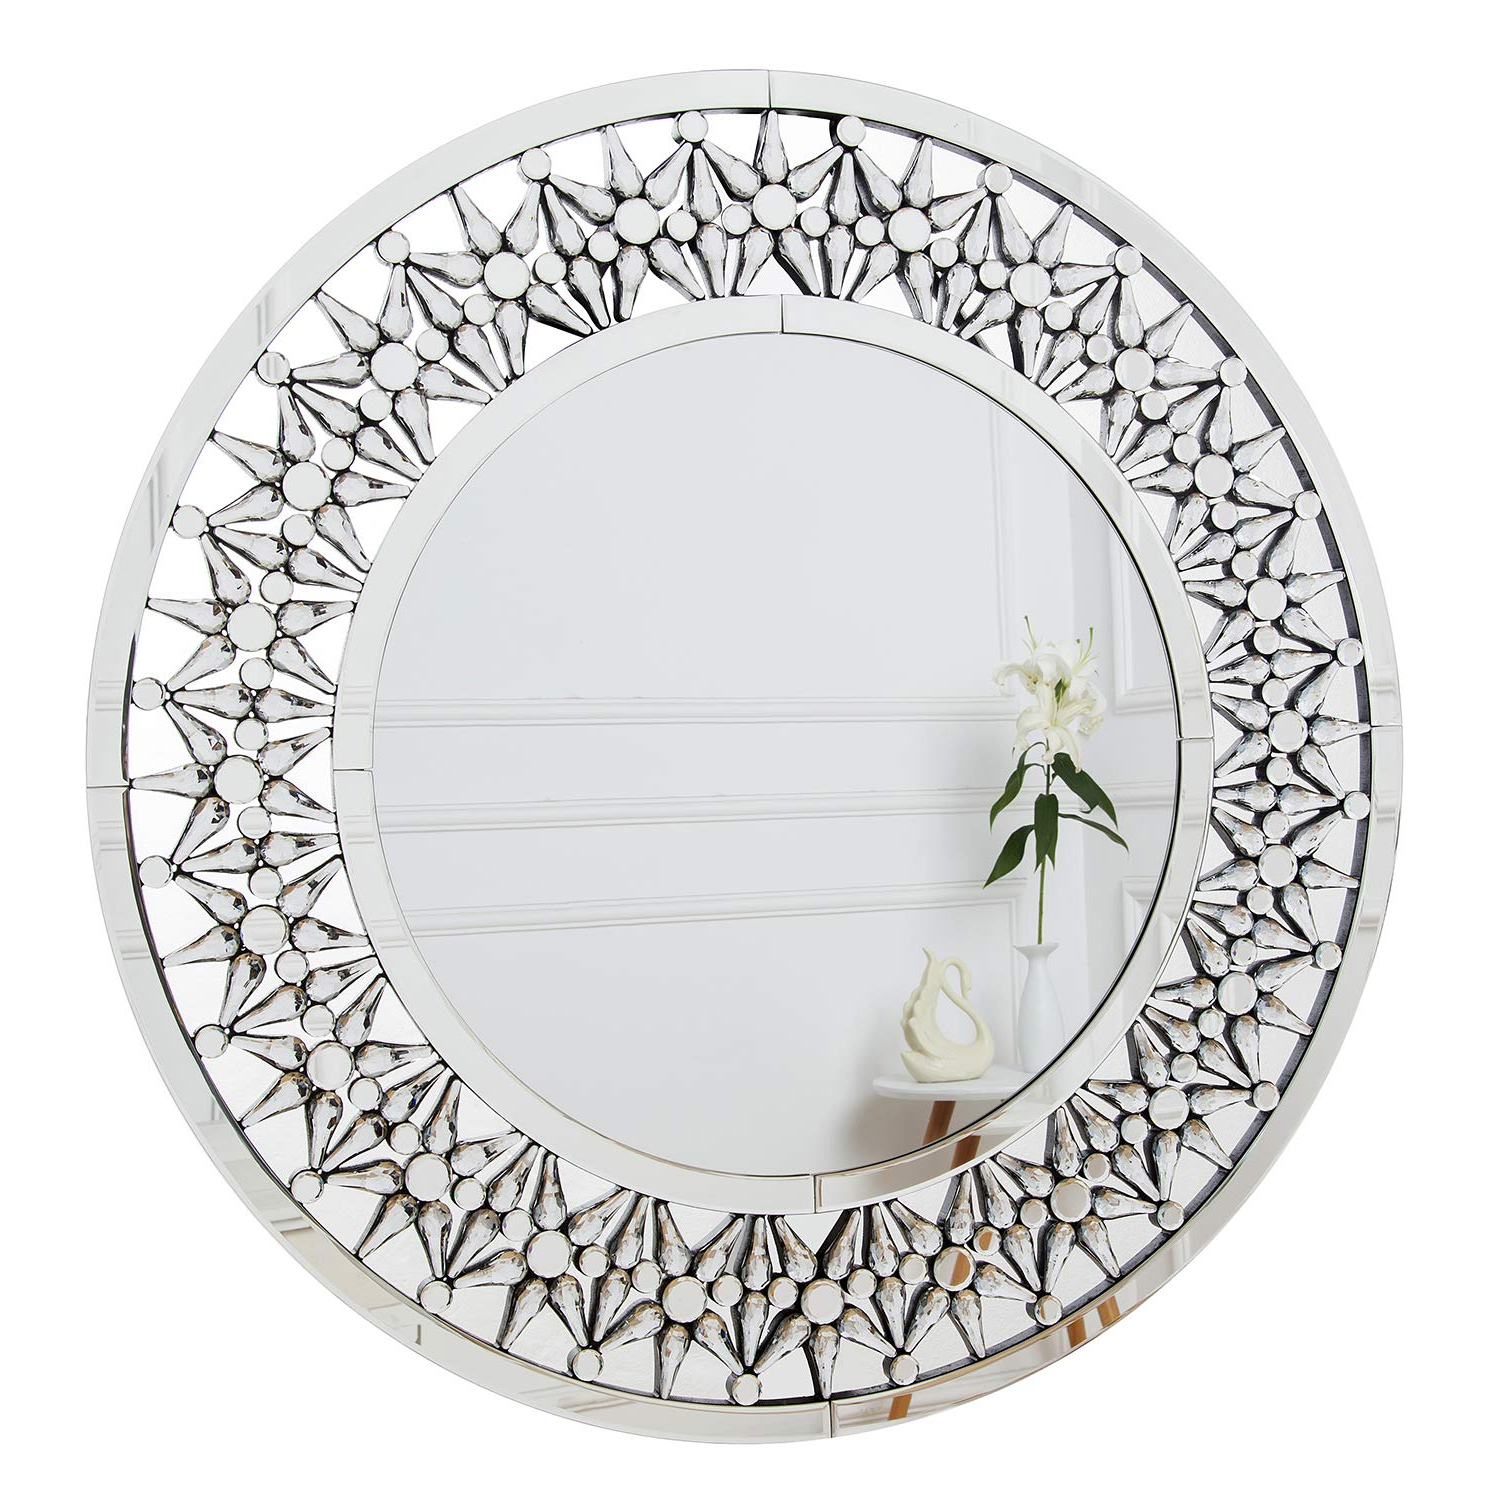 Large Circular Wall Mirrors Throughout Best And Newest Richtop Wall Mirror Large Starburst Crystal Mosaic Frame Round Wall Mounted  Mirrors For Living Room, Bedroom, Hallway, Kitchen 90Cm X 90Cm (View 8 of 20)